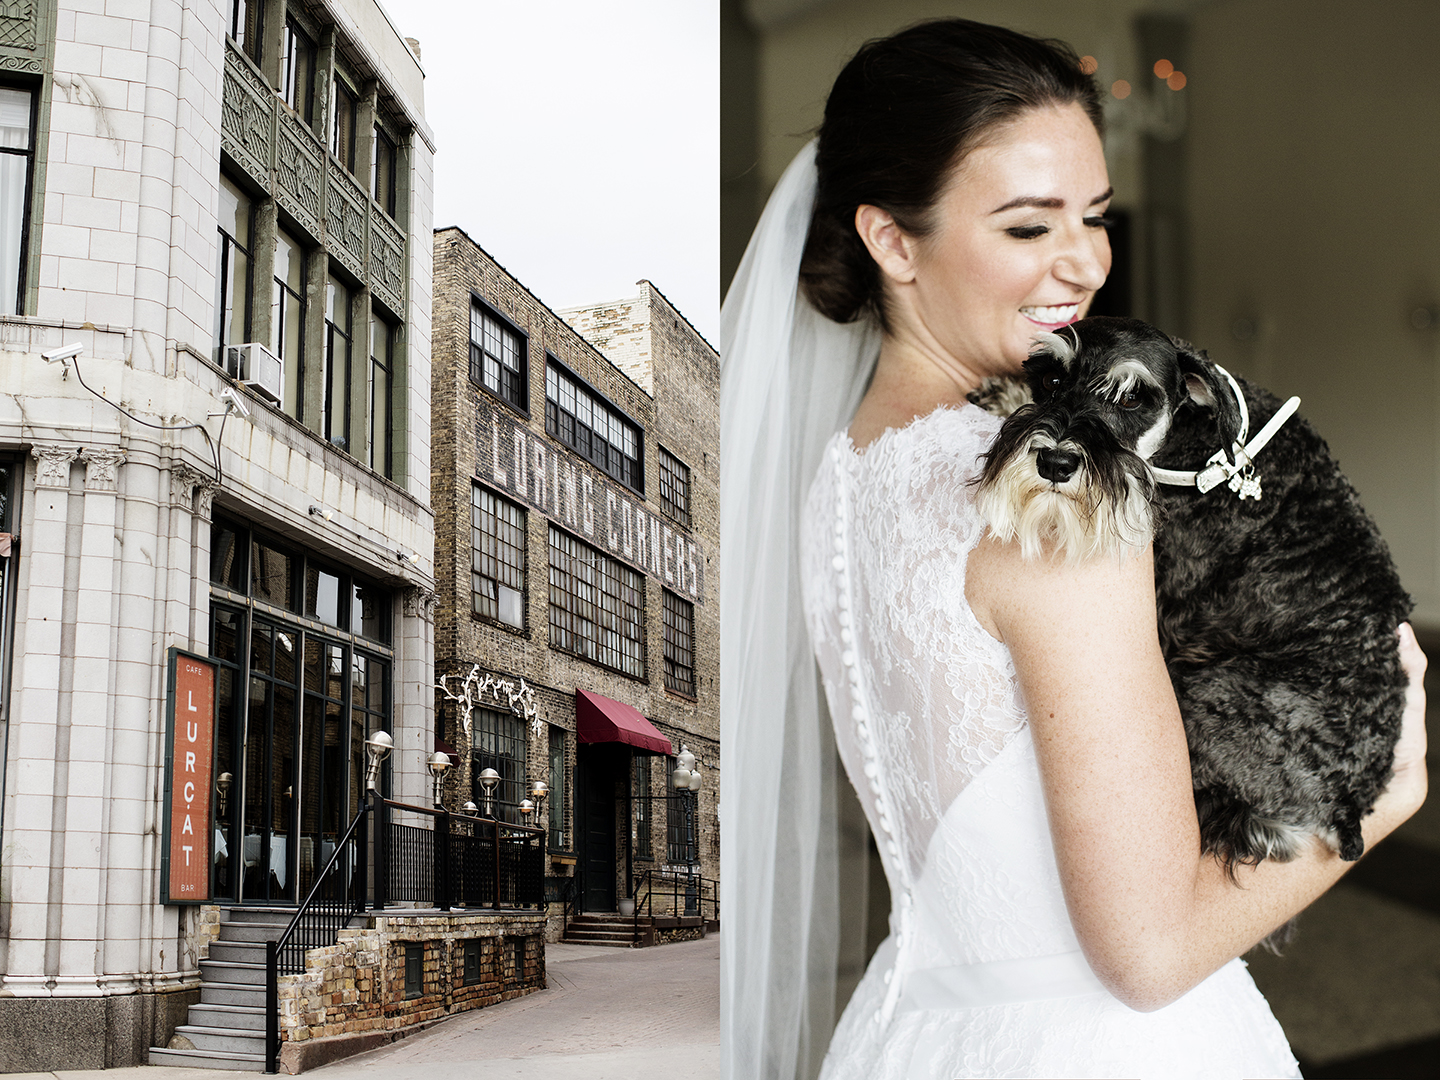 Loring Park Wedding Photos | Photography by Photogen Inc. | Eliesa Johnson | Based in Minneapolis, Minnesota